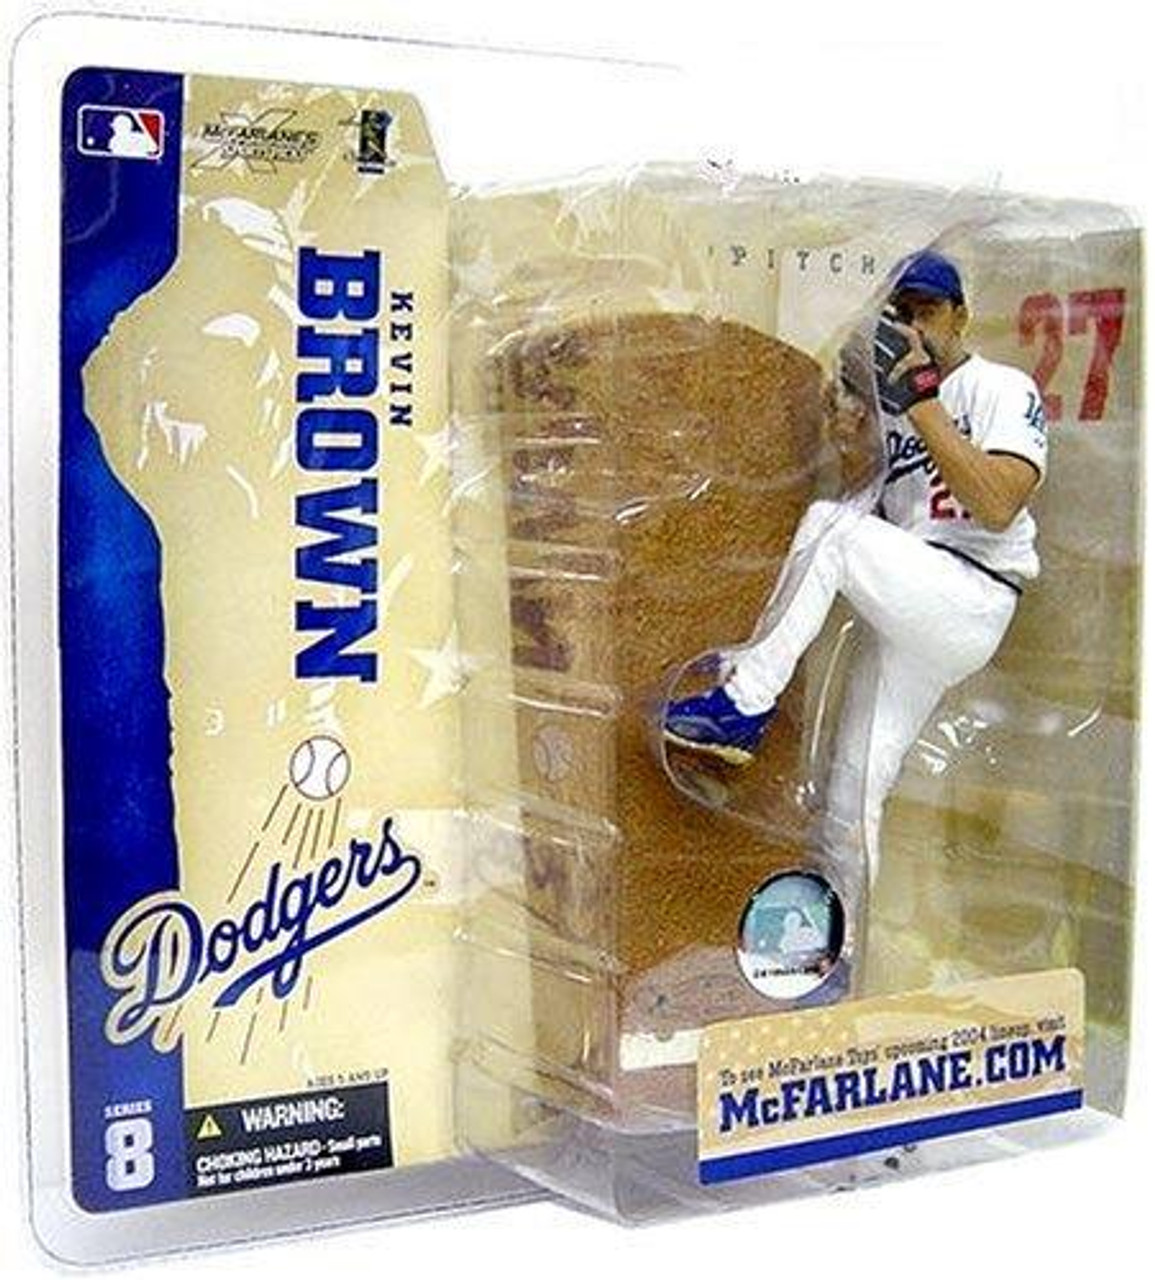 McFarlane Toys MLB Los Angeles Dodgers Sports Picks Series 8 Kevin Brown Action Figure [Dodgers Variant]